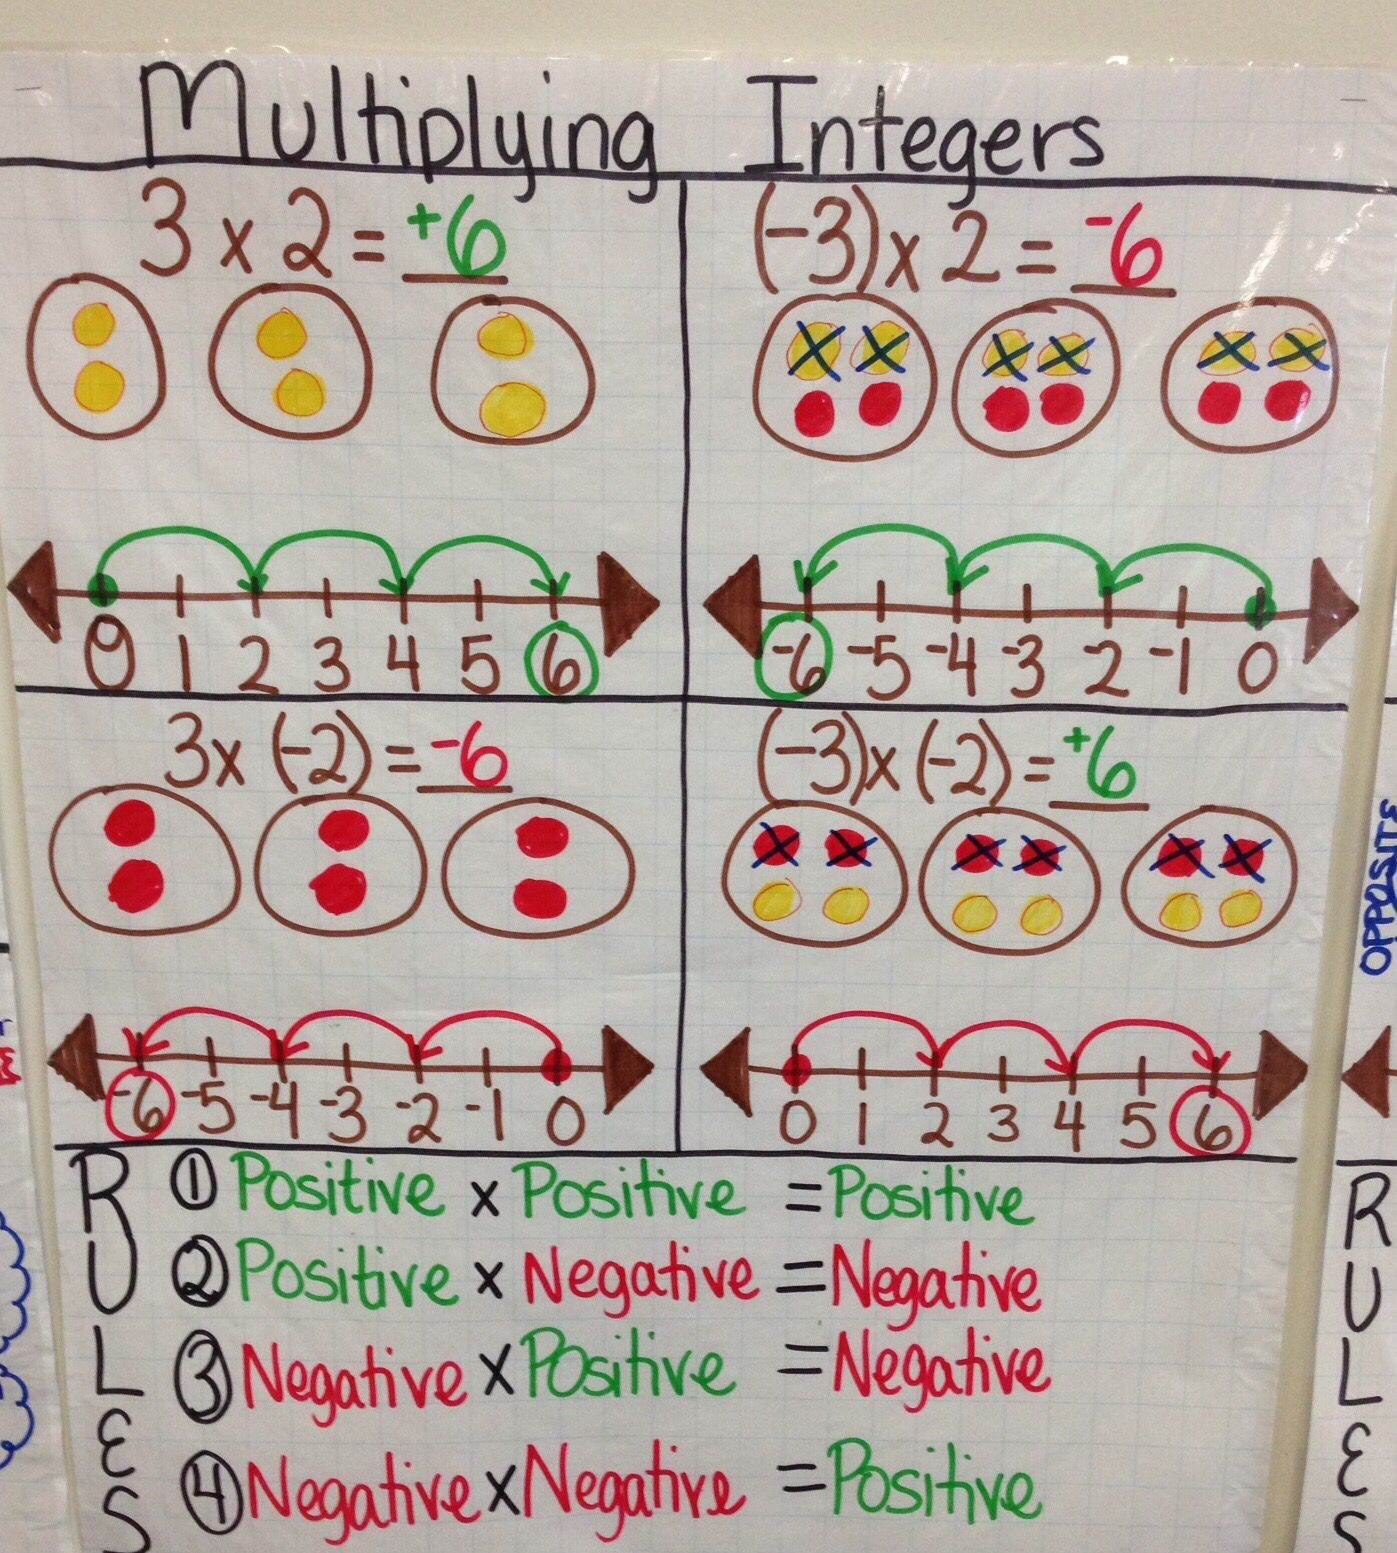 Multiplying and dividing integers worksheet Awesome